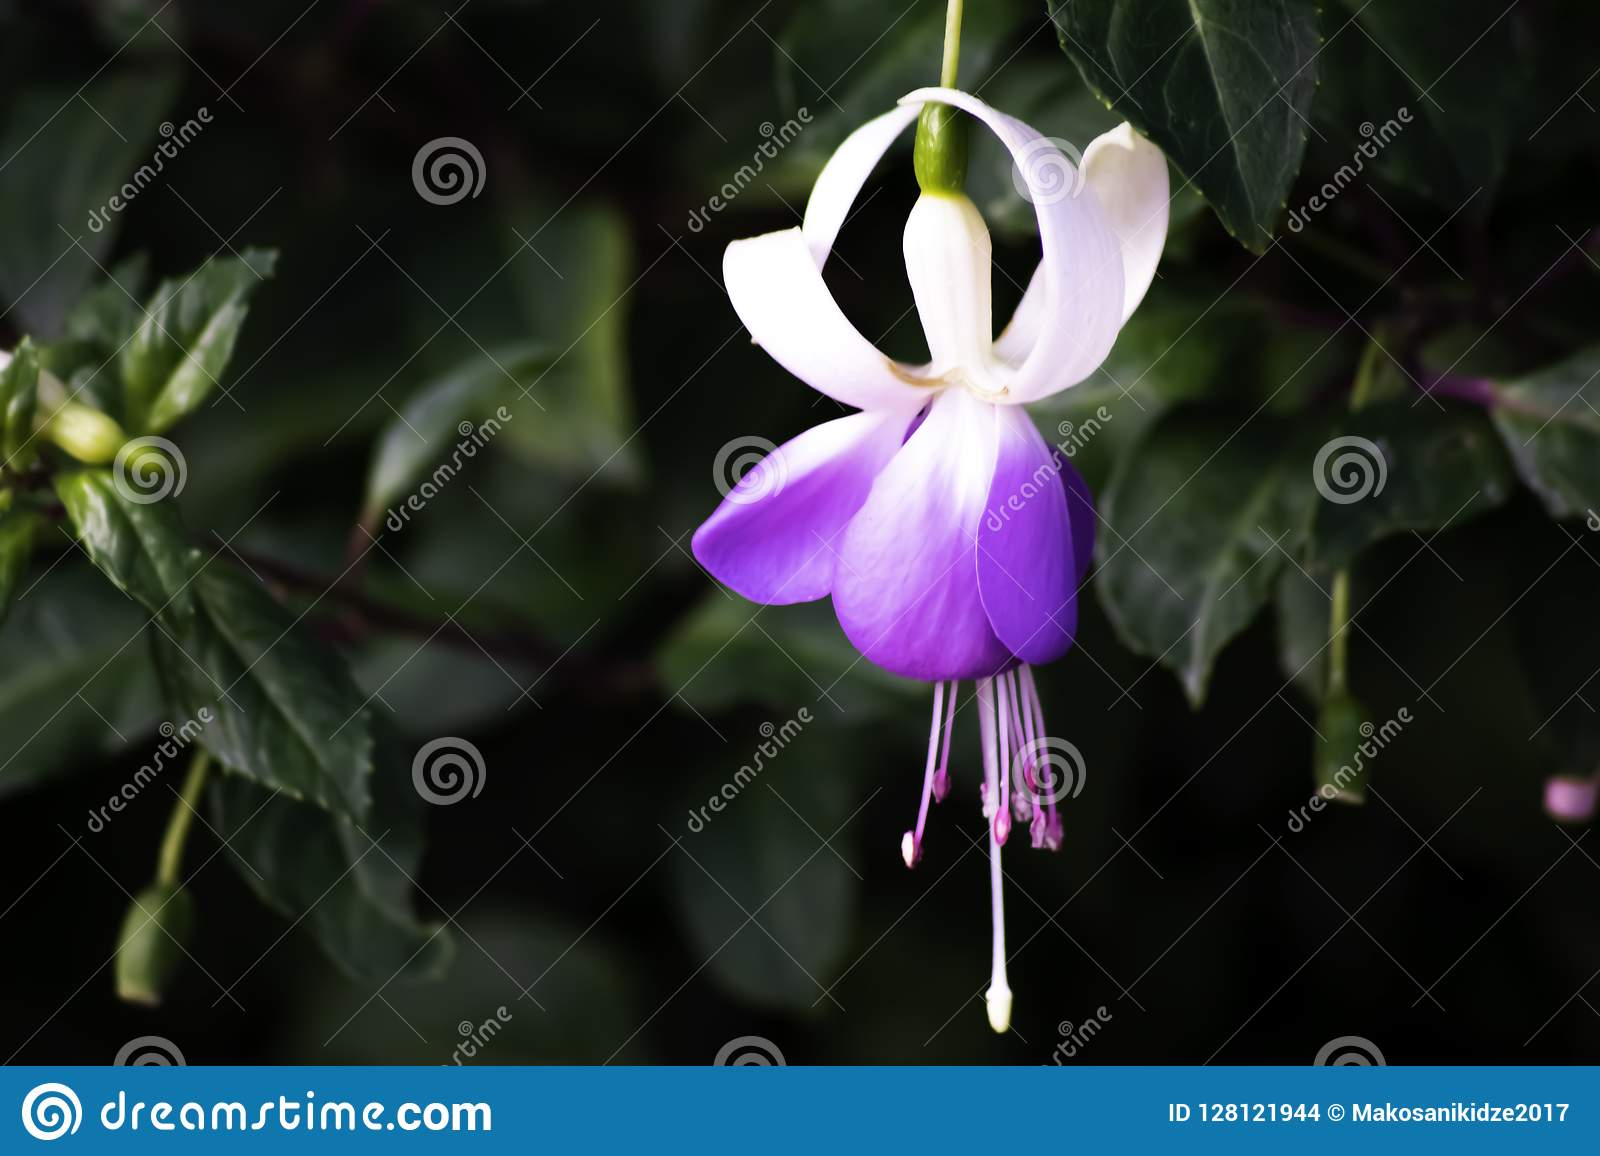 Purple and white bell flower in the garden